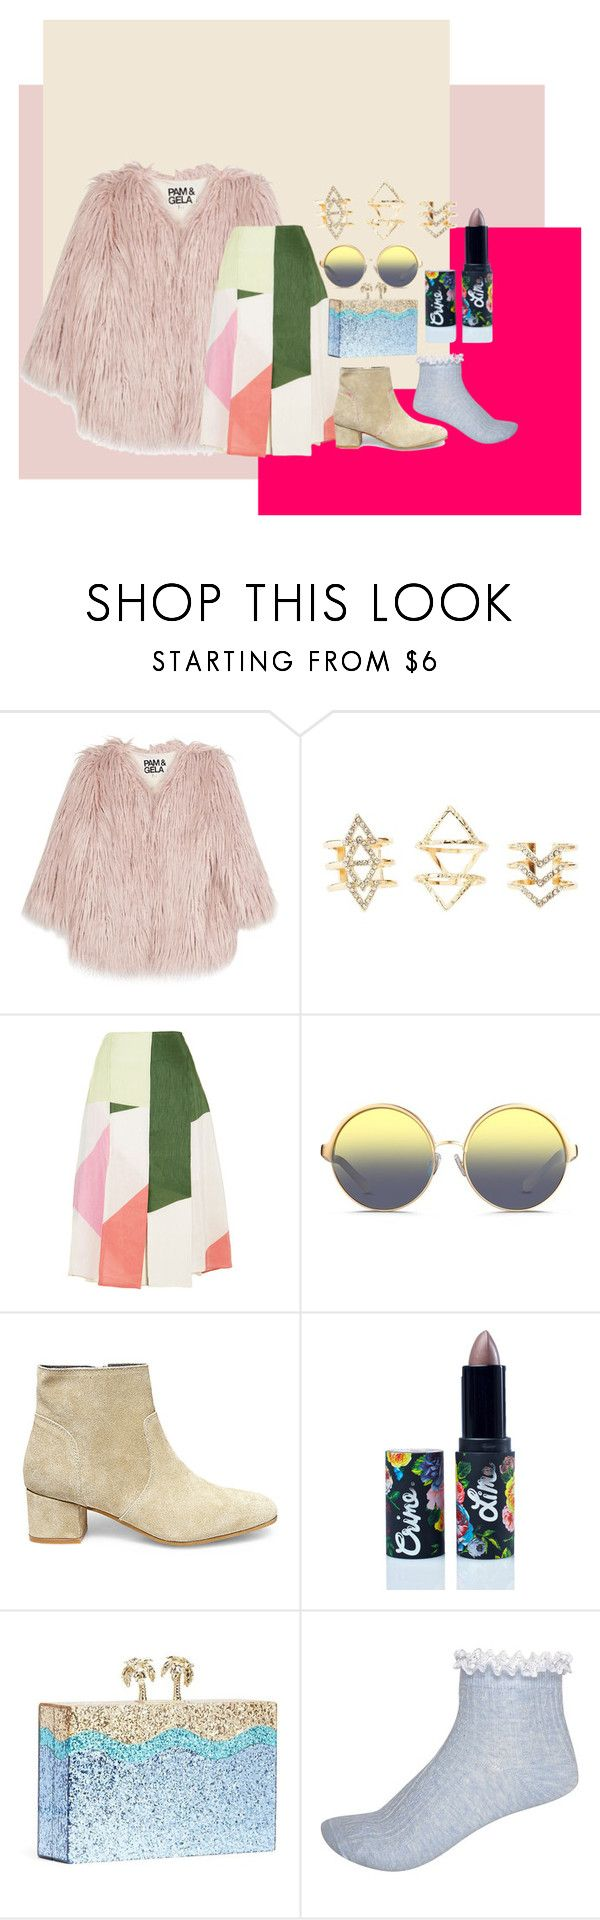 """fluffy fluffy"" by nadyashafirah on Polyvore featuring Pam & Gela, Charlotte Russe, TIBI, Matthew Williamson, Steve Madden, Lime Crime, Kate Spade and River Island"